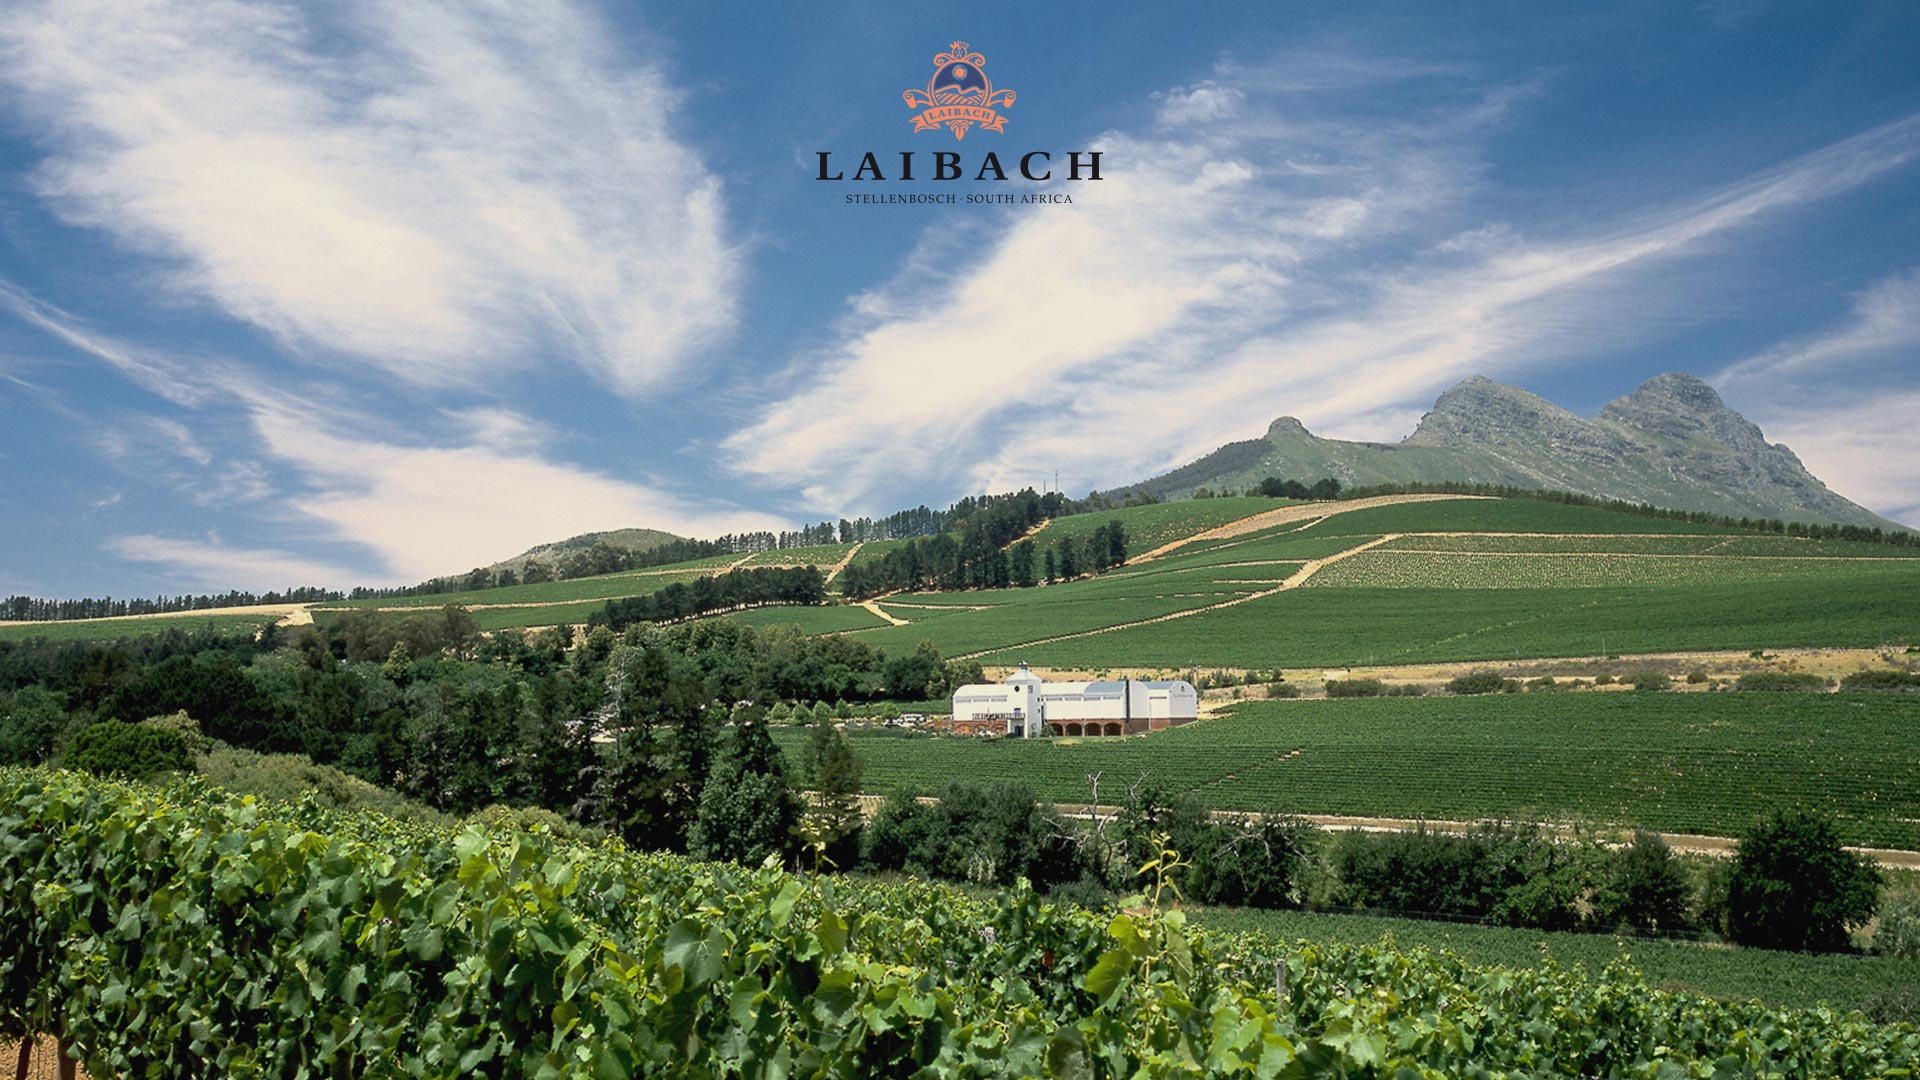 Laibach Vineyards